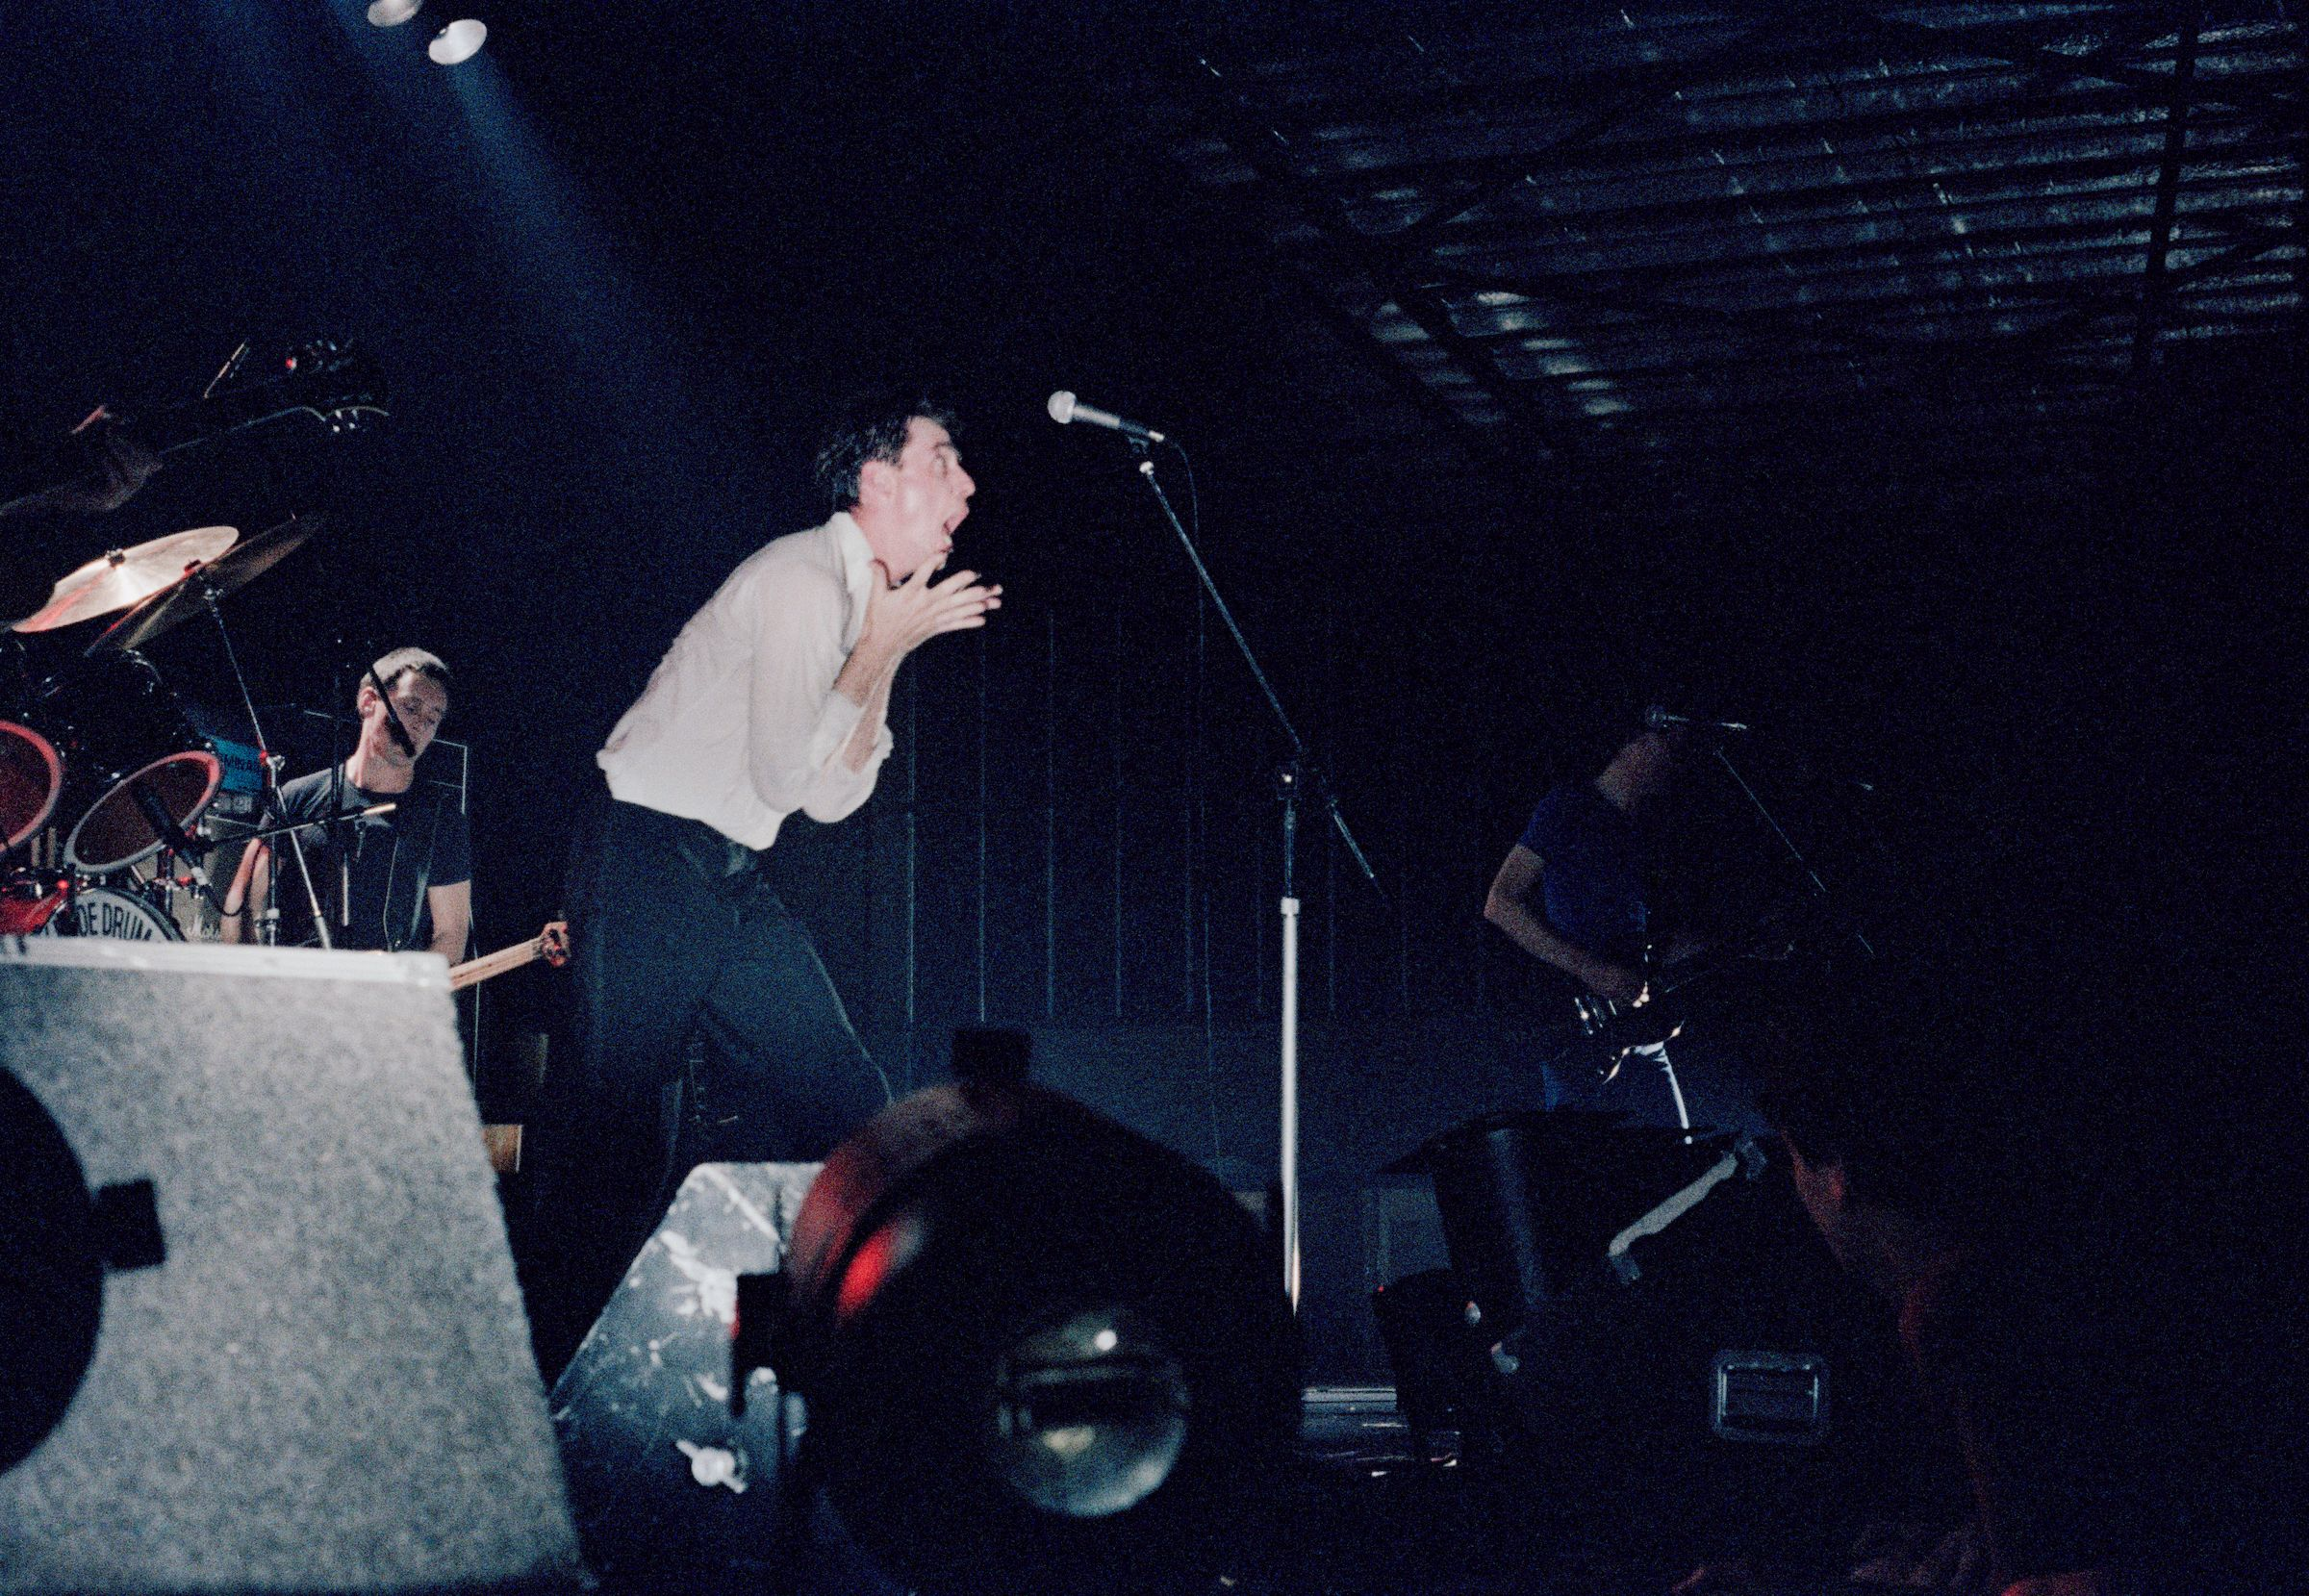 The Angels performing,  Canberra Showgrounds, 29 November 1979 'pling